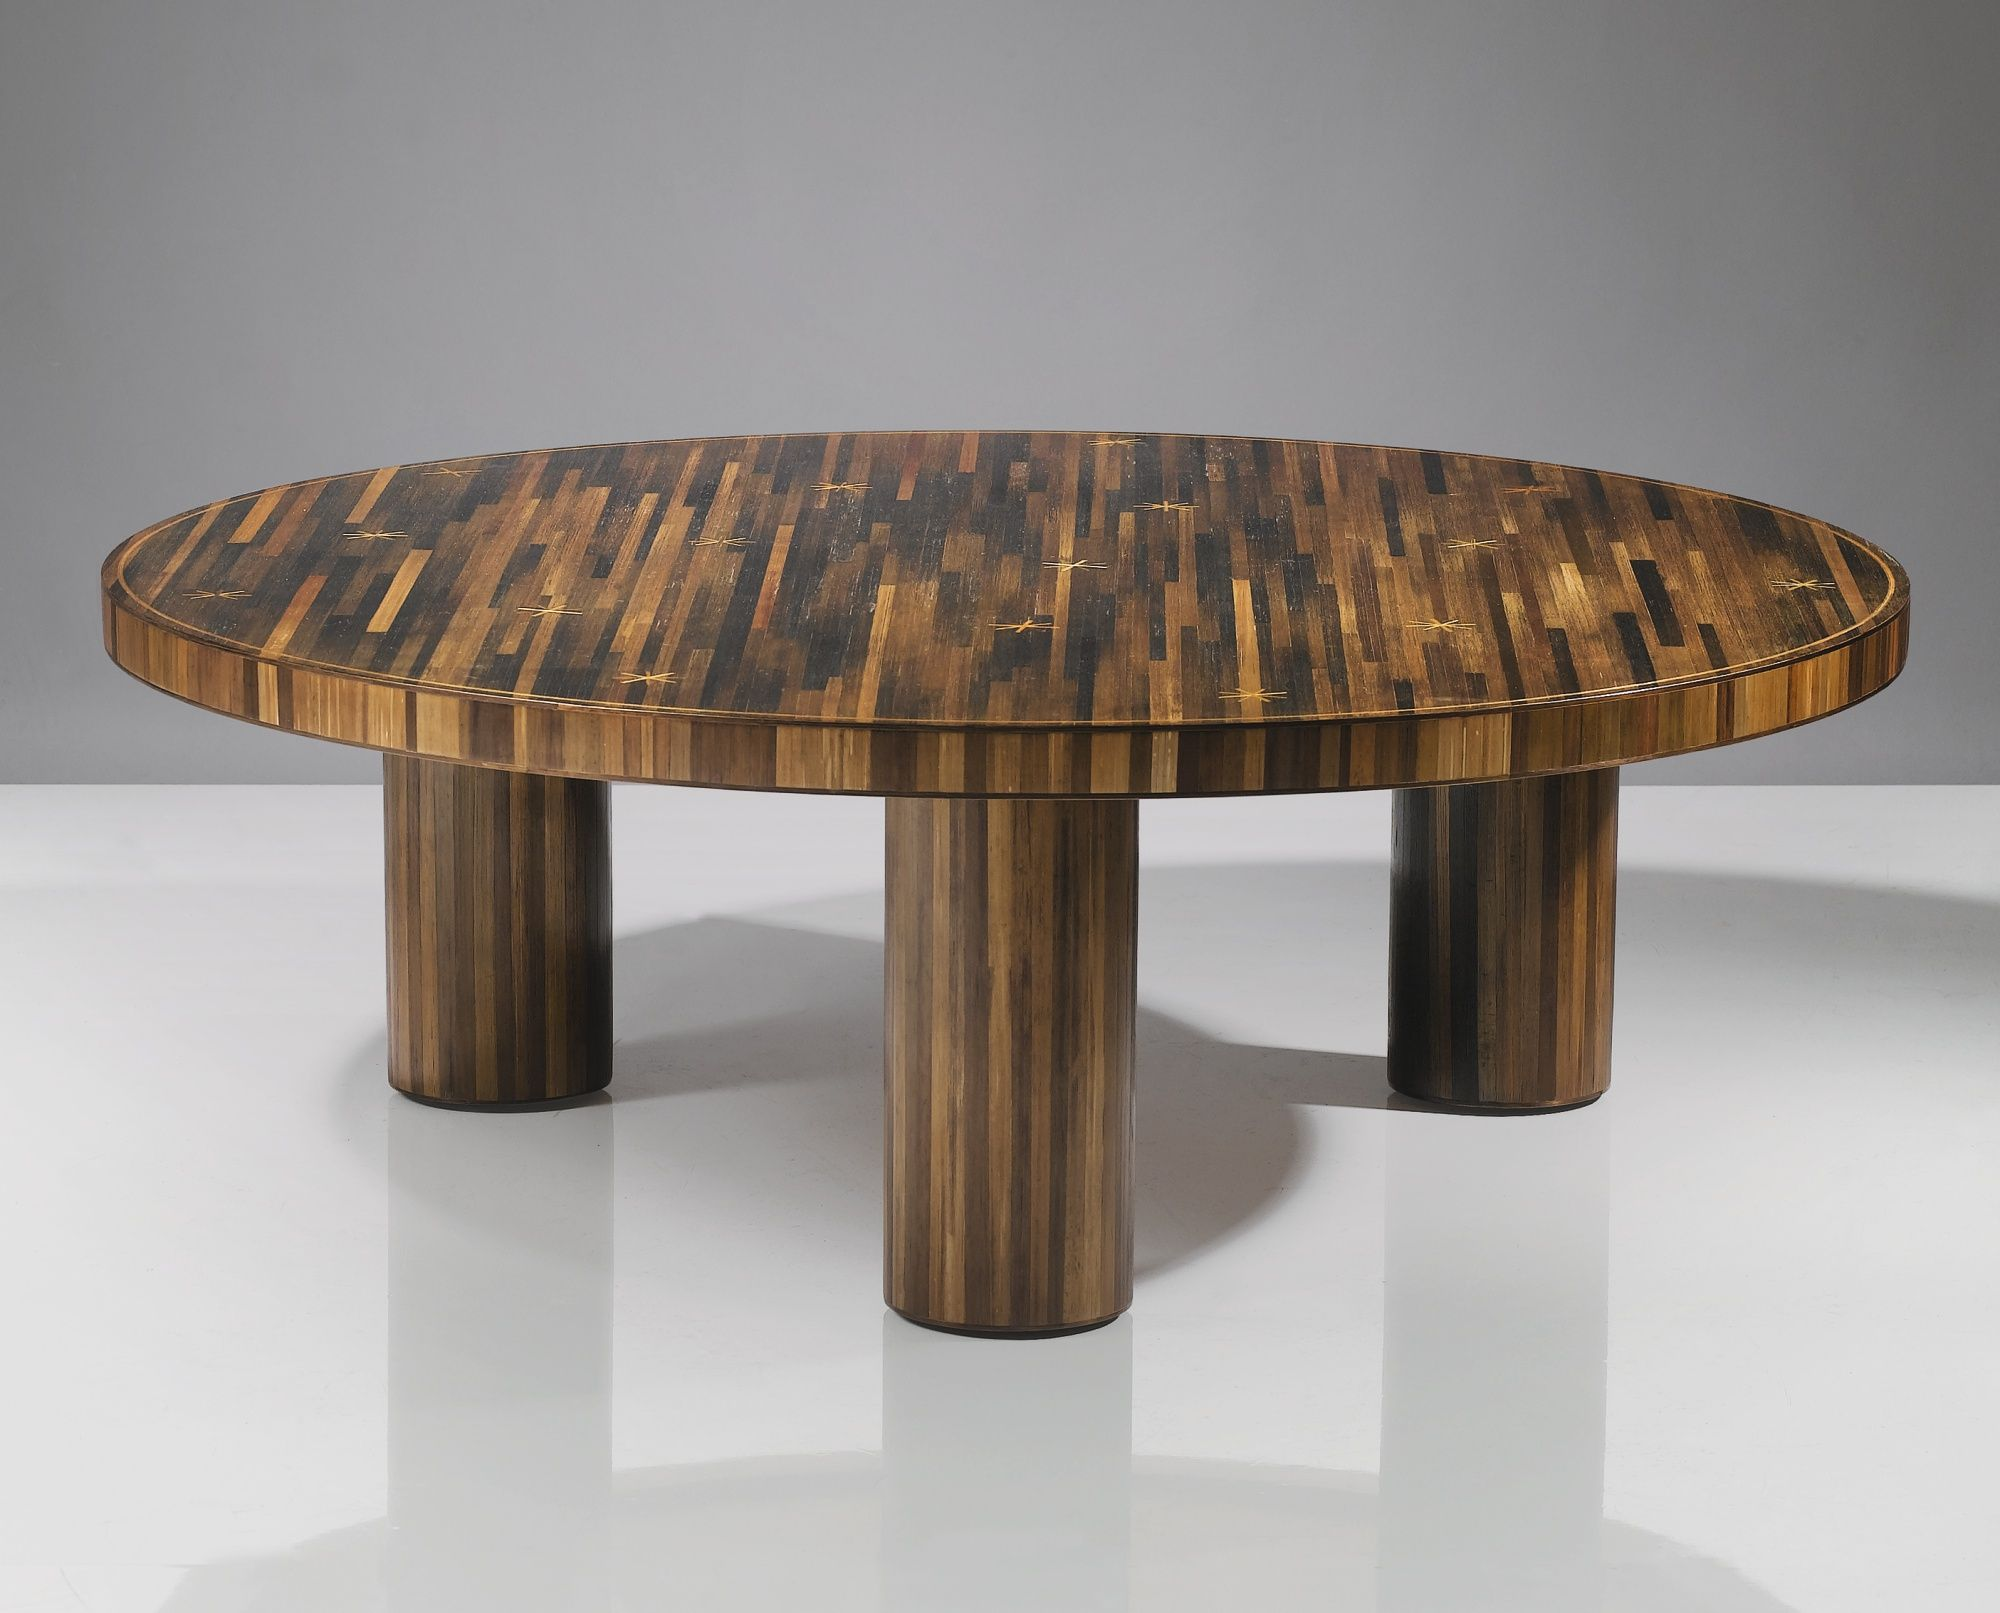 Royere Jean Etoile Low Tabl Furniture Sotheby S N09880lot9q76len Art Deco Console Table Marquetry Furniture Furniture [ 1613 x 2000 Pixel ]